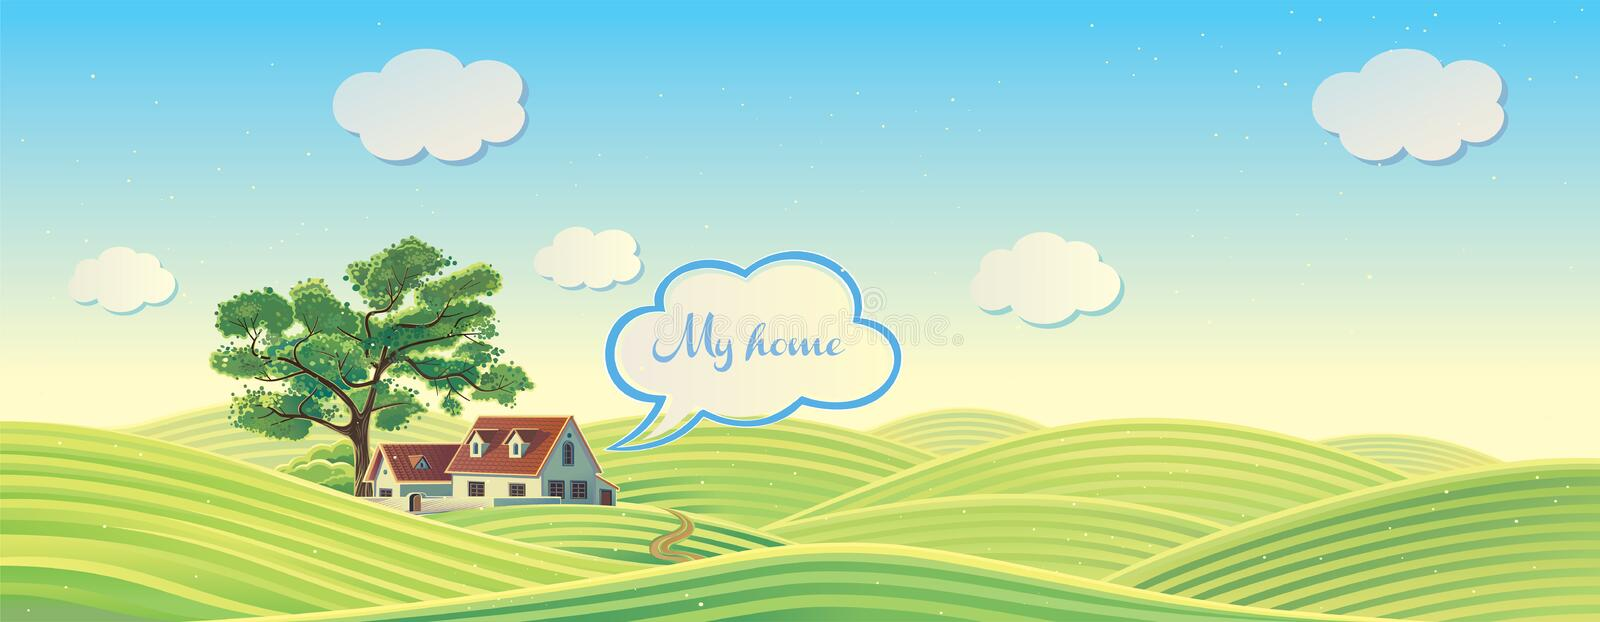 Hilly rural landscape. Hilly rural landscape with house and tree stock illustration